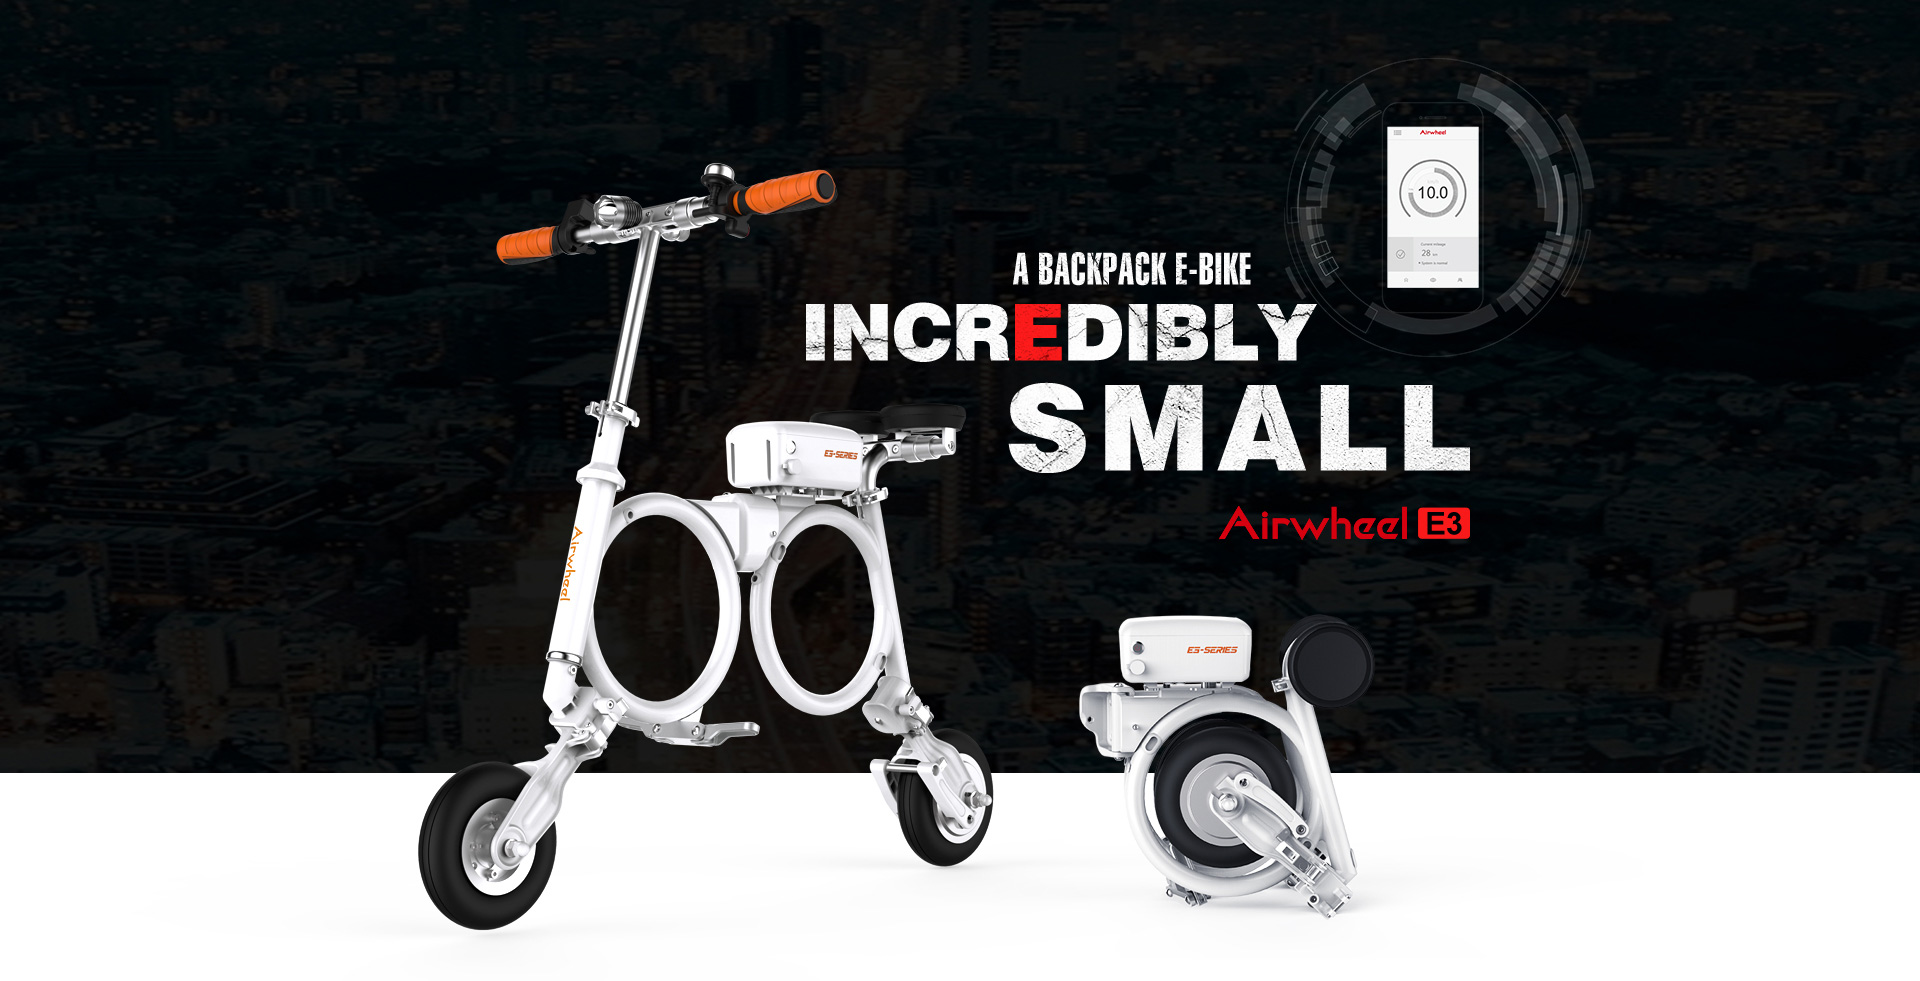 E3 intelligent foldable electric bike